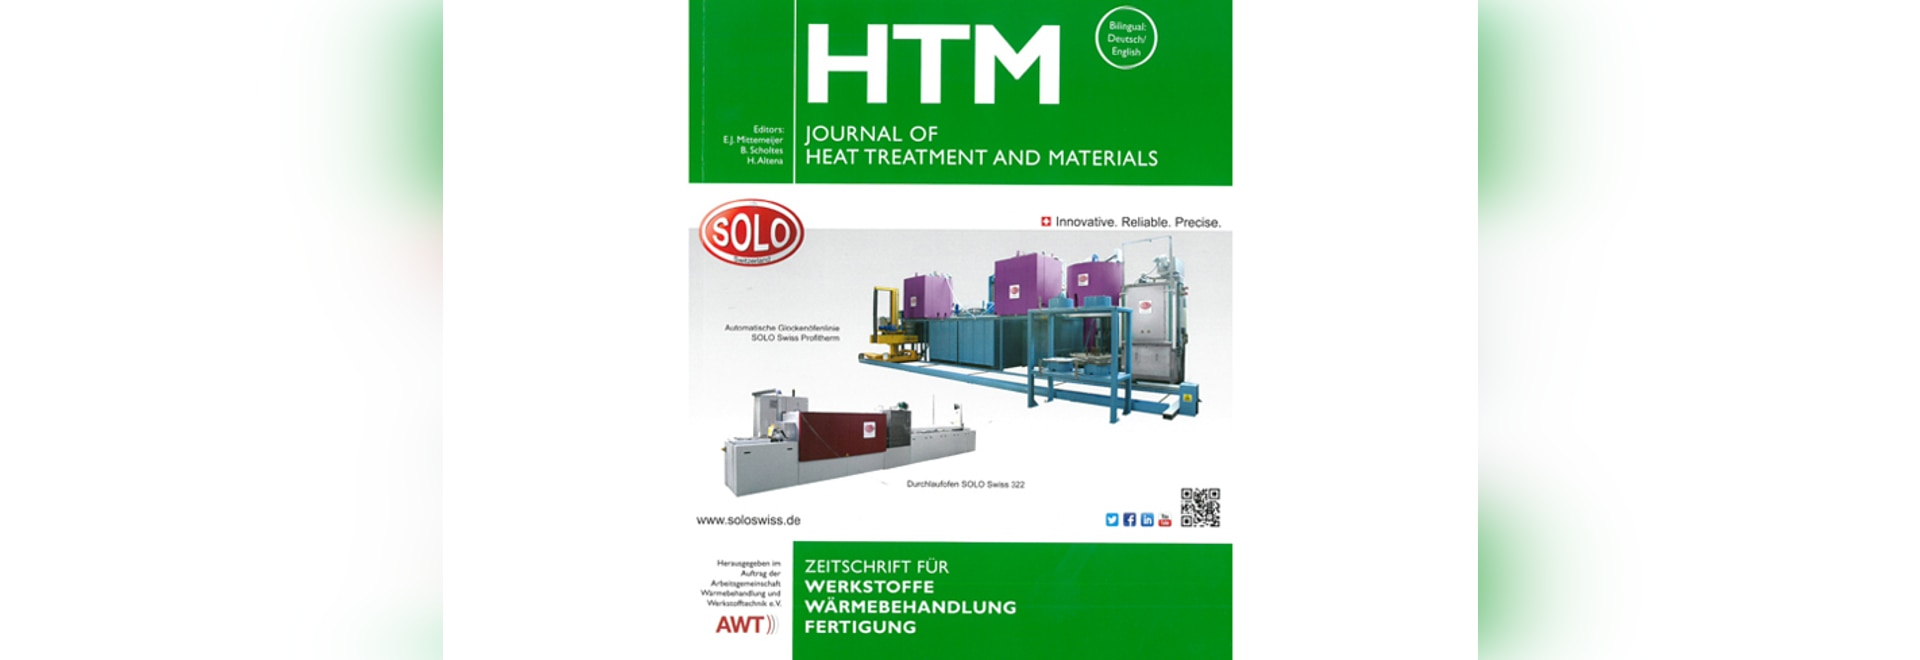 Cover HTM - Journal of Heat Treatment and Materials - Edition 6/2018 - SOLO Swiss